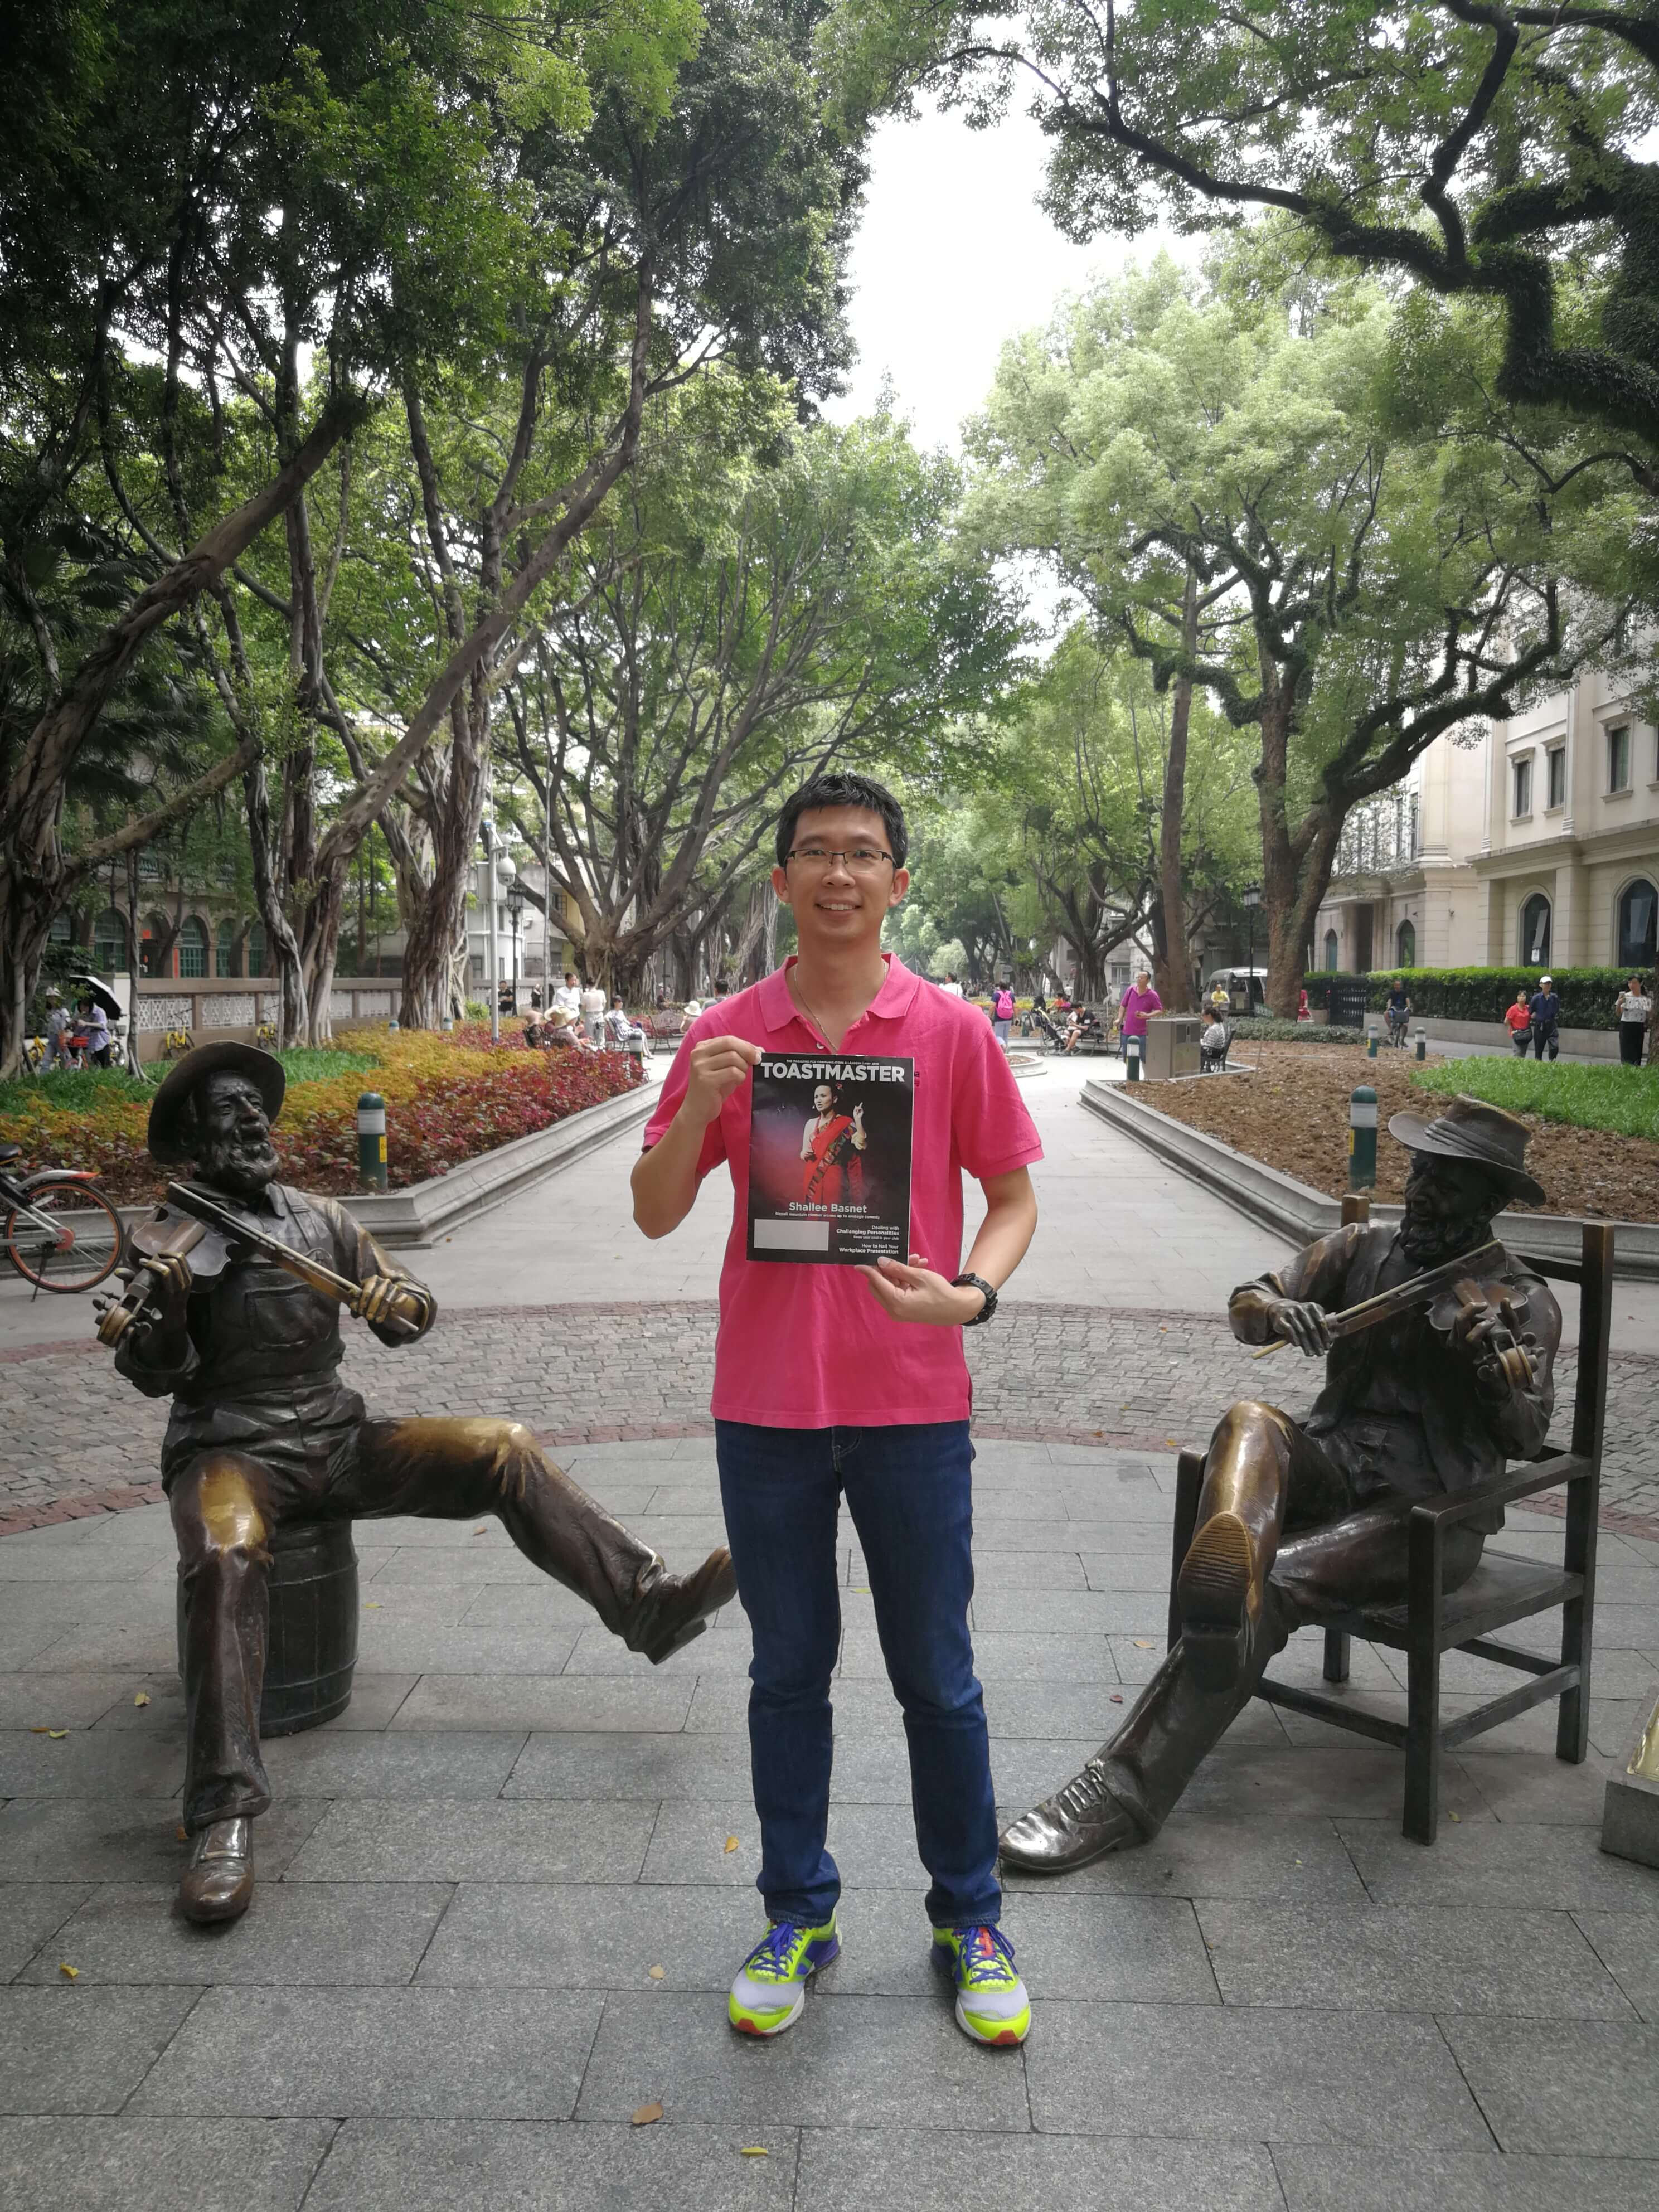 Goh Chee Yong of Petaling Jaya, Malaysia, stands between two violinist statues in Shamian Park, a sandbank island in Guangzhou, China.